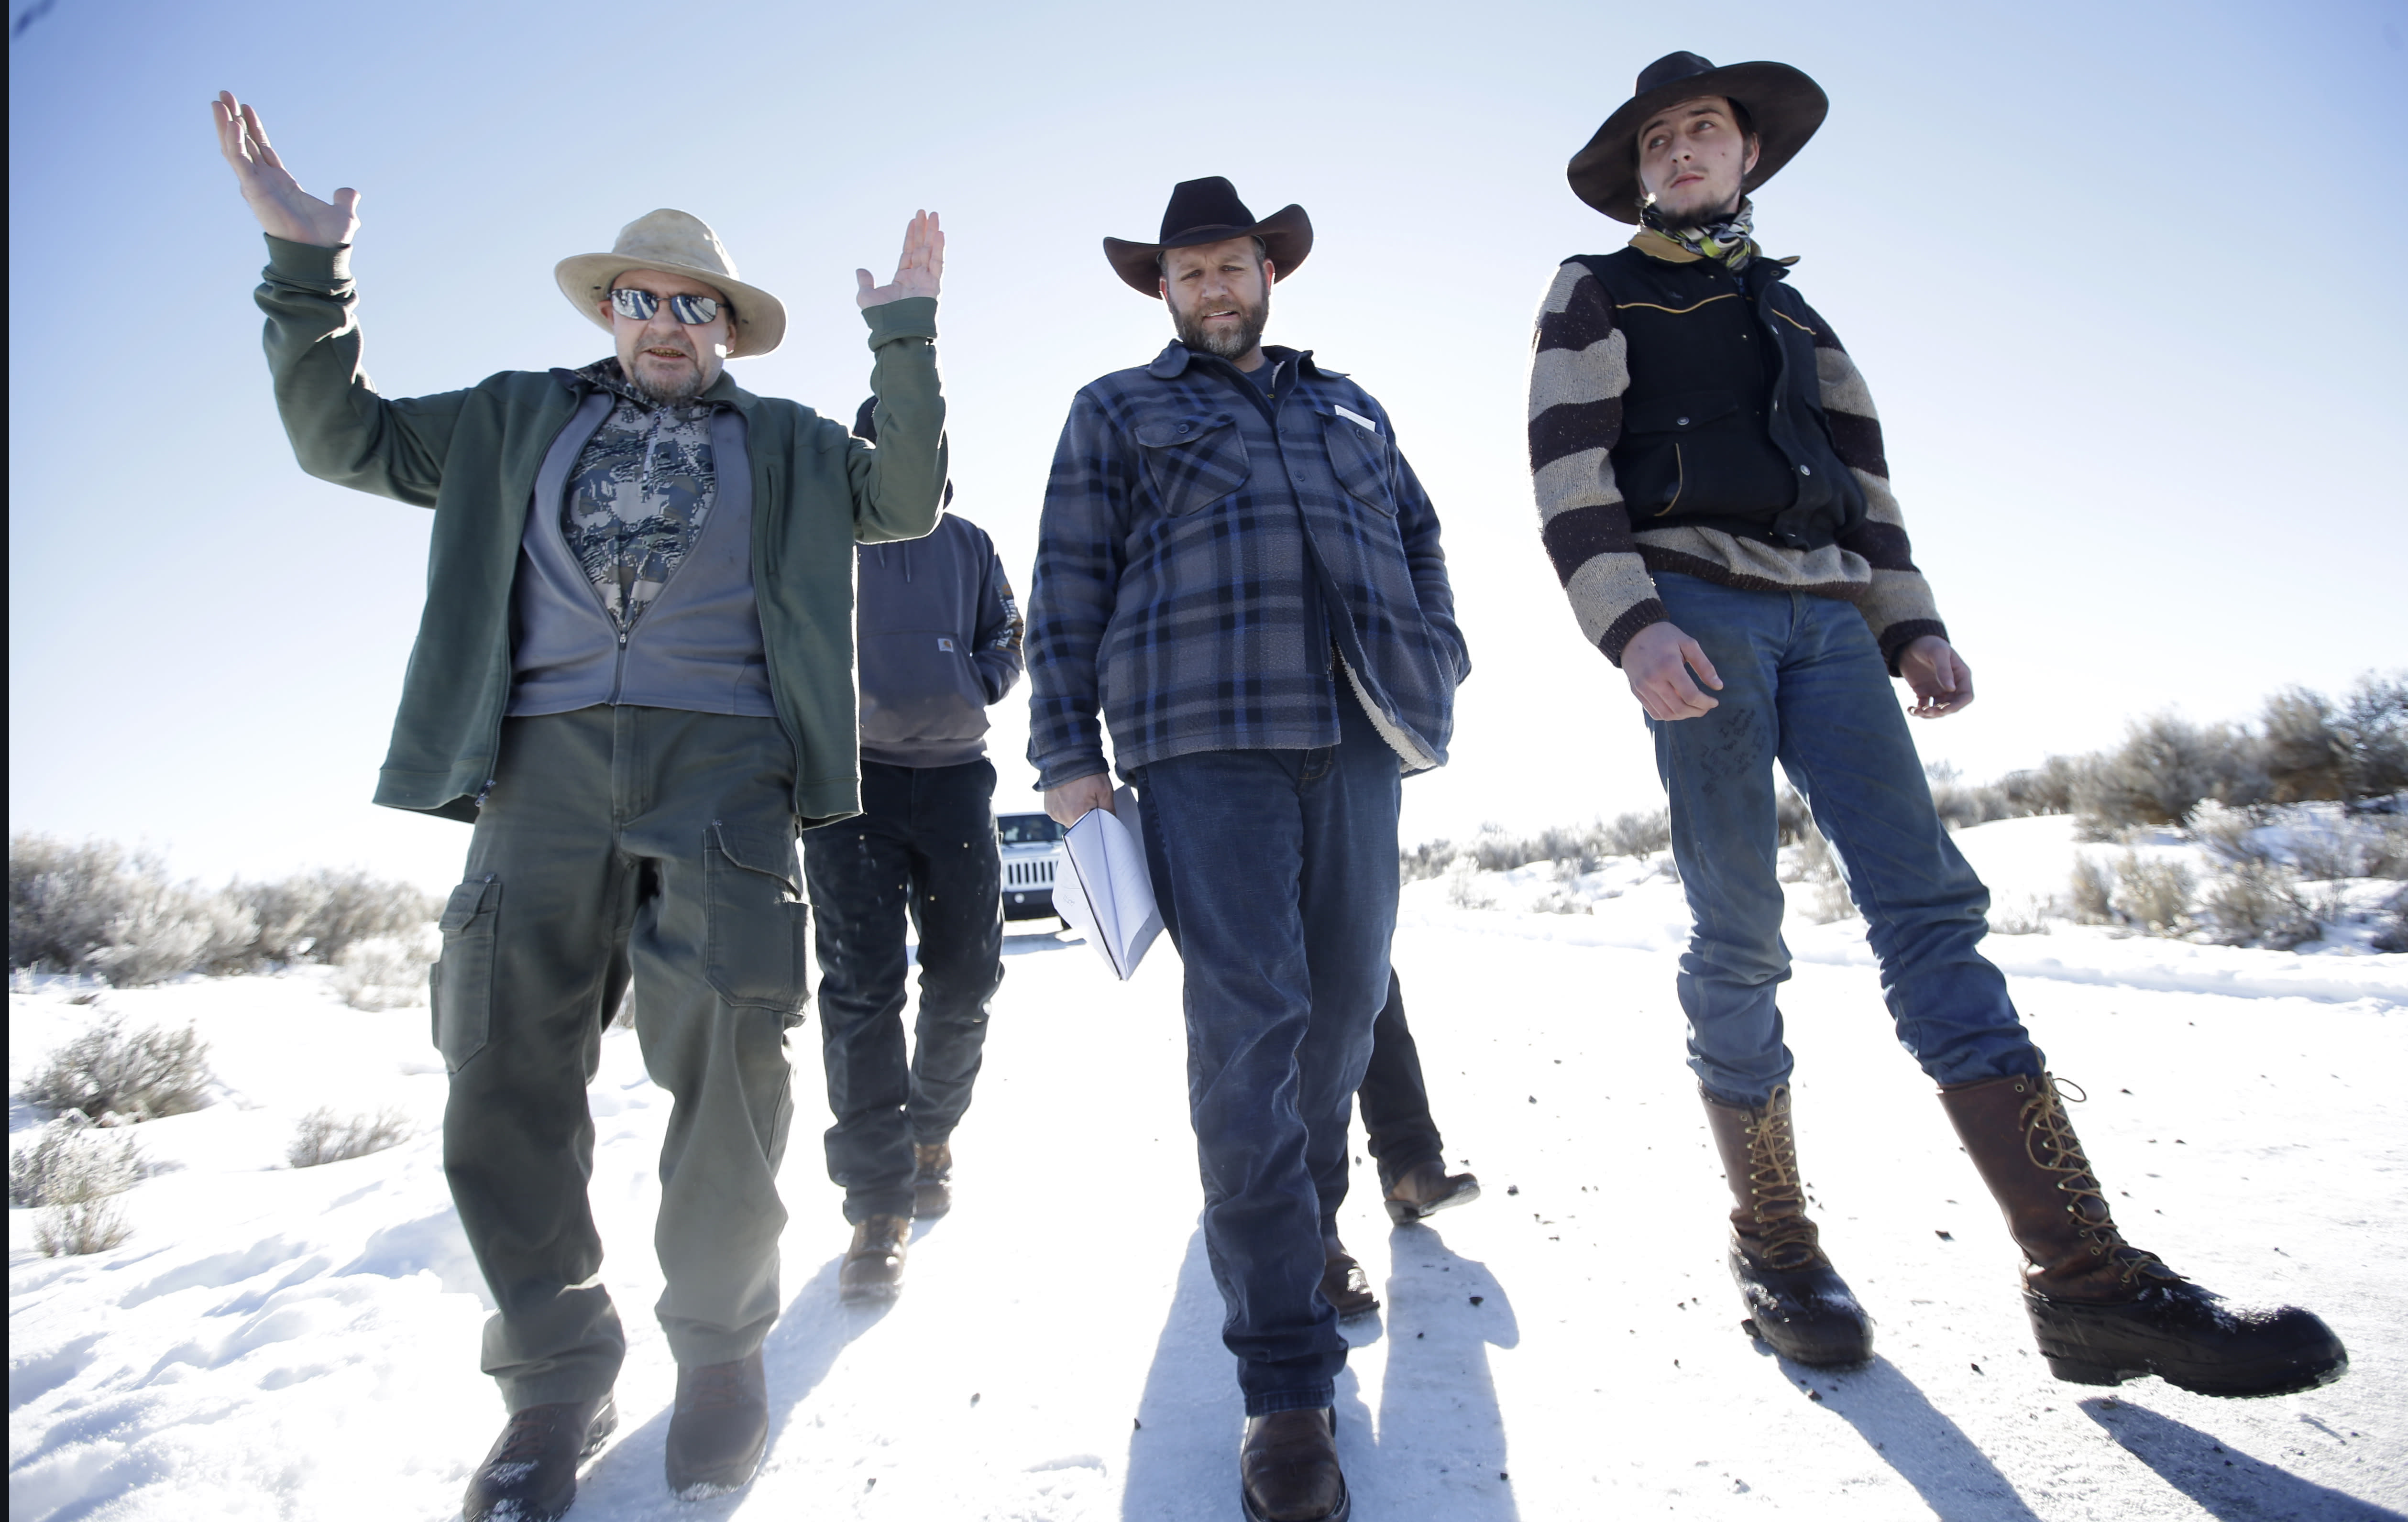 FILE - In this Jan 8, 2016, file photo, Burns resident Steve Atkins, left, talks with Ammon Bundy, center, one of the sons of Nevada rancher Cliven Bundy, following a news conference at Malheur National Wildlife Refuge near Burns, Ore. Bundy's family played central roles in a 2014 standoff over grazing fees in Nevada and the 2016 occupation of Oregon's Malheur National Wildlife Refuge. (AP Photo/Rick Bowmer, File)